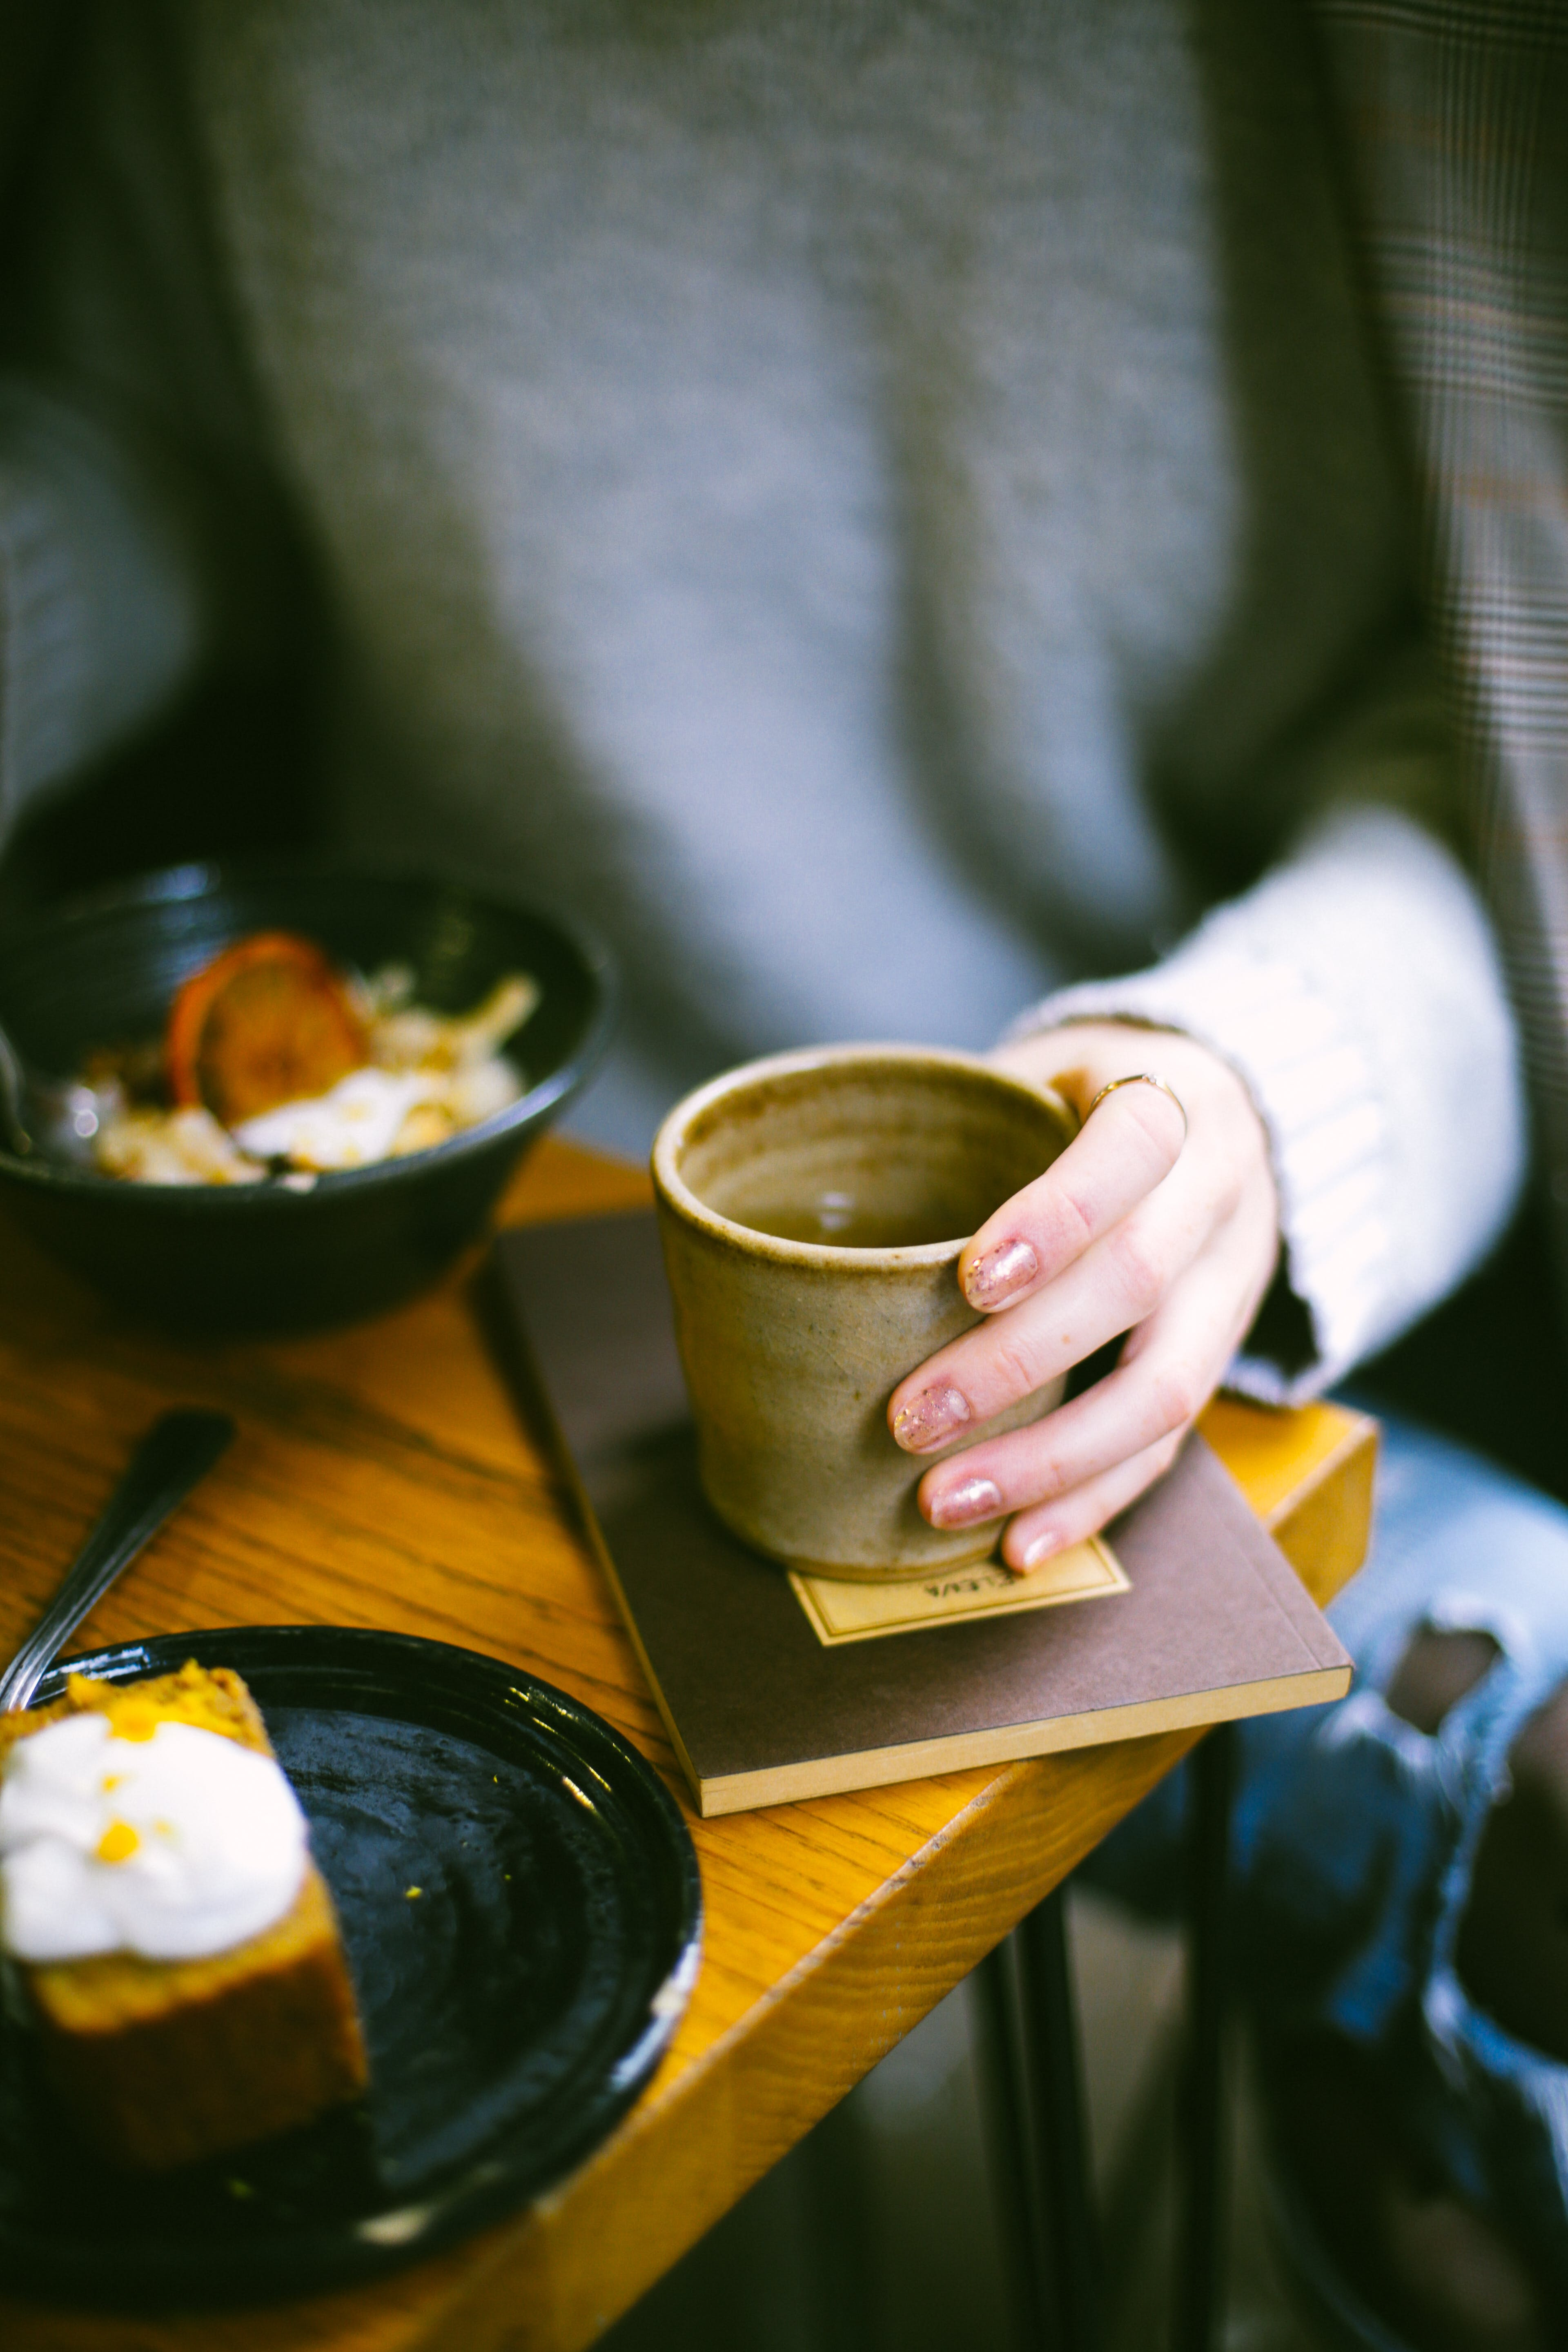 Person Holding Mug on Top of Brown Book